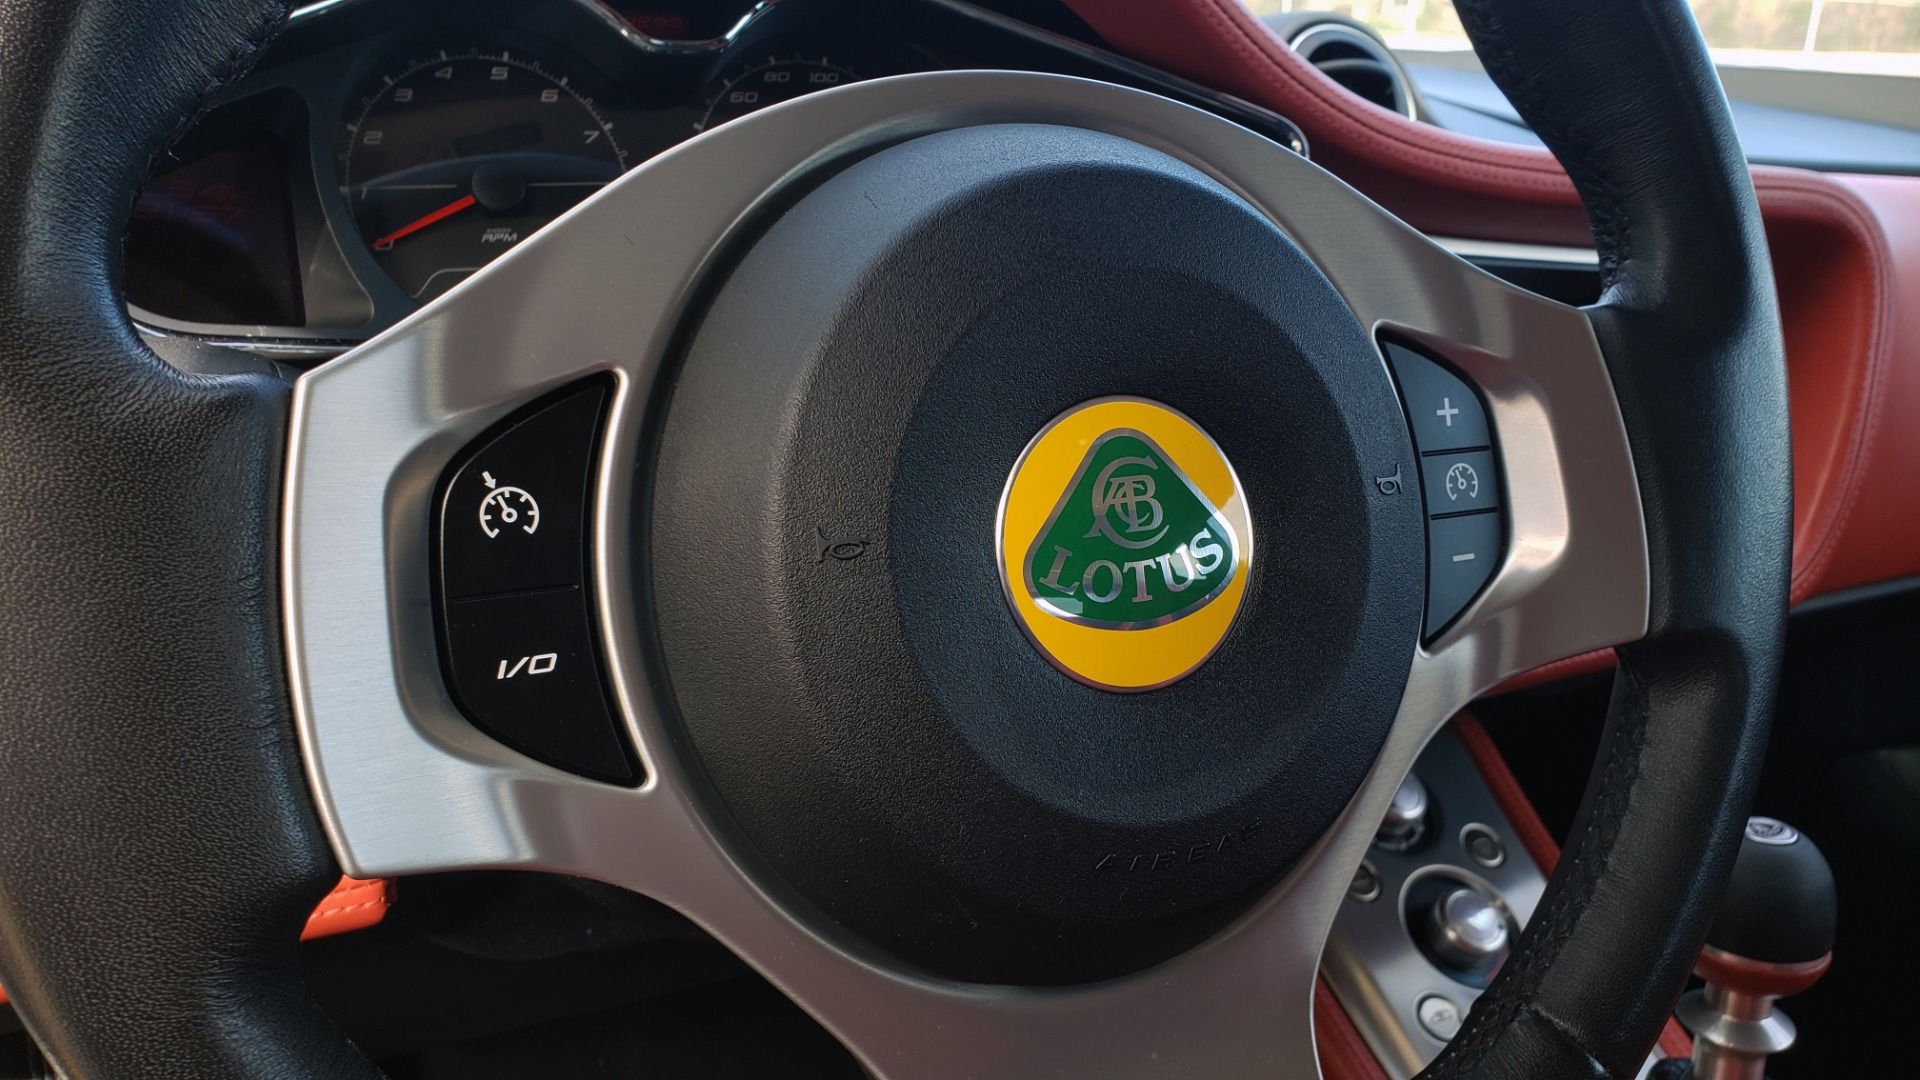 Used 2011 Lotus EVORA S 2+2 / 3.5L V6 / 6-SPD MANUAL / PIONEER / REARVIEW / LOW MILES for sale Sold at Formula Imports in Charlotte NC 28227 28